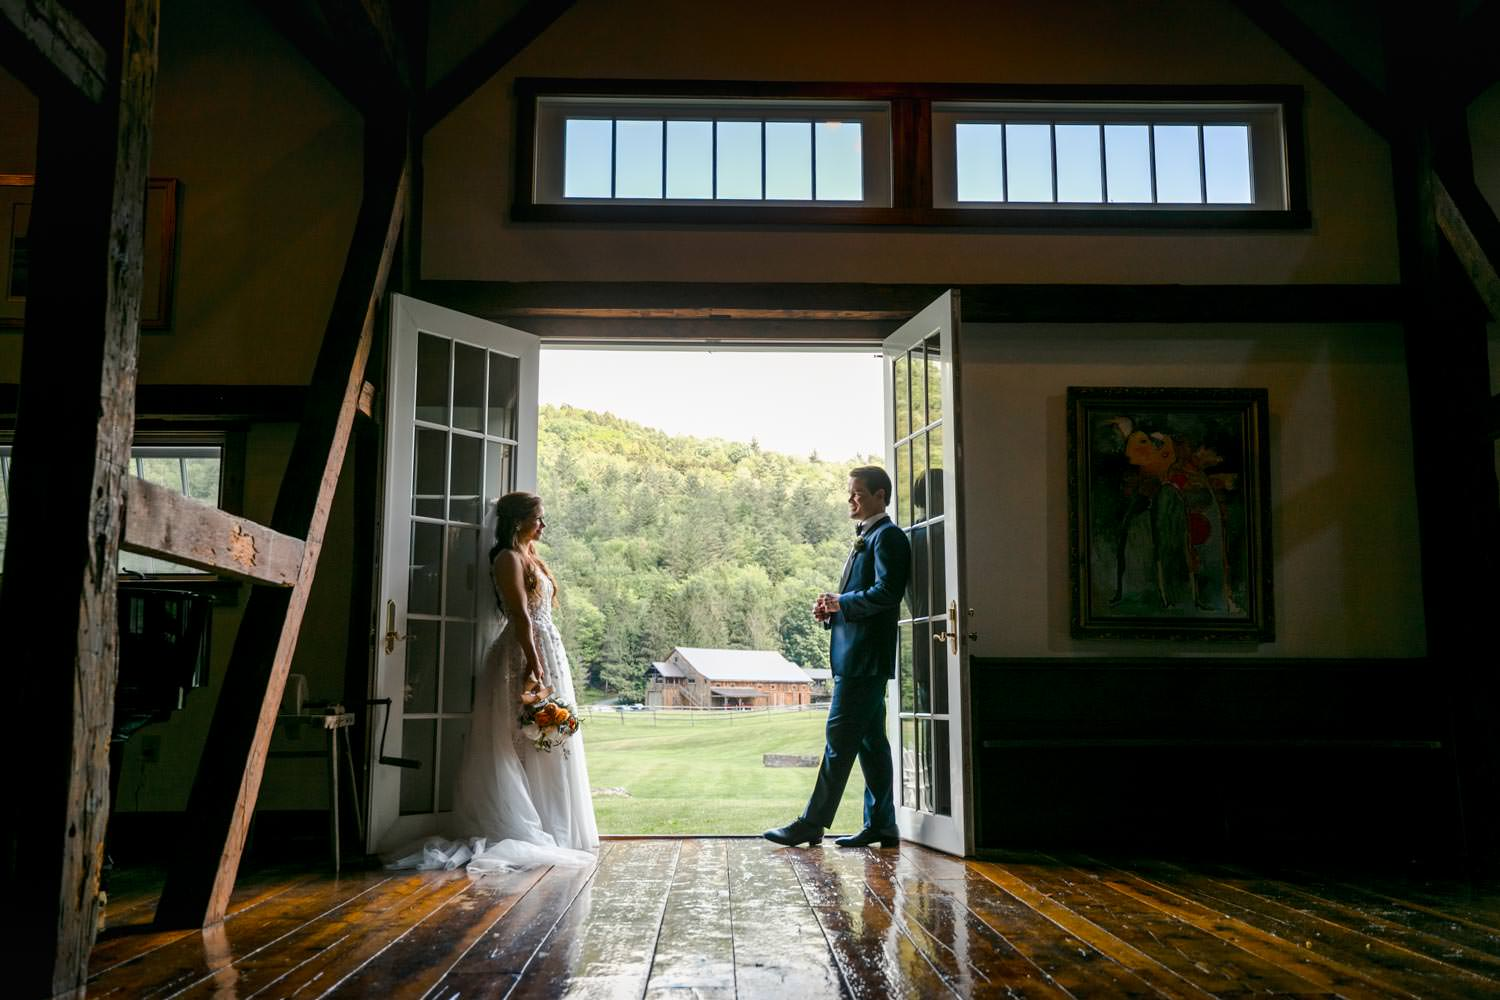 wedding couple poses for photographer in barn doorway at riverside farm vermont